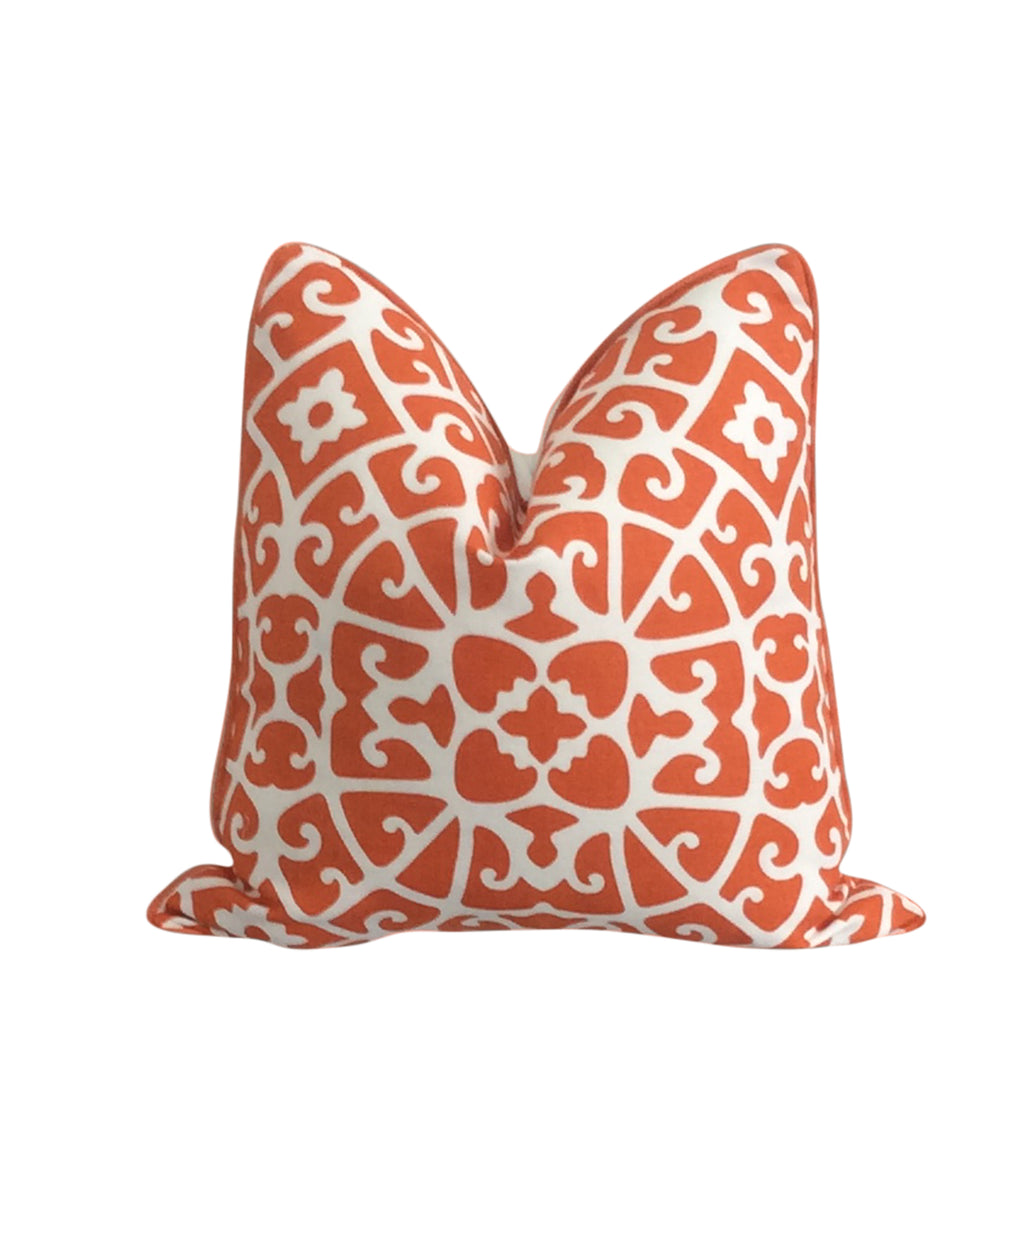 Scalamandre Ashun Lattice Persimmon Fabric Pillow